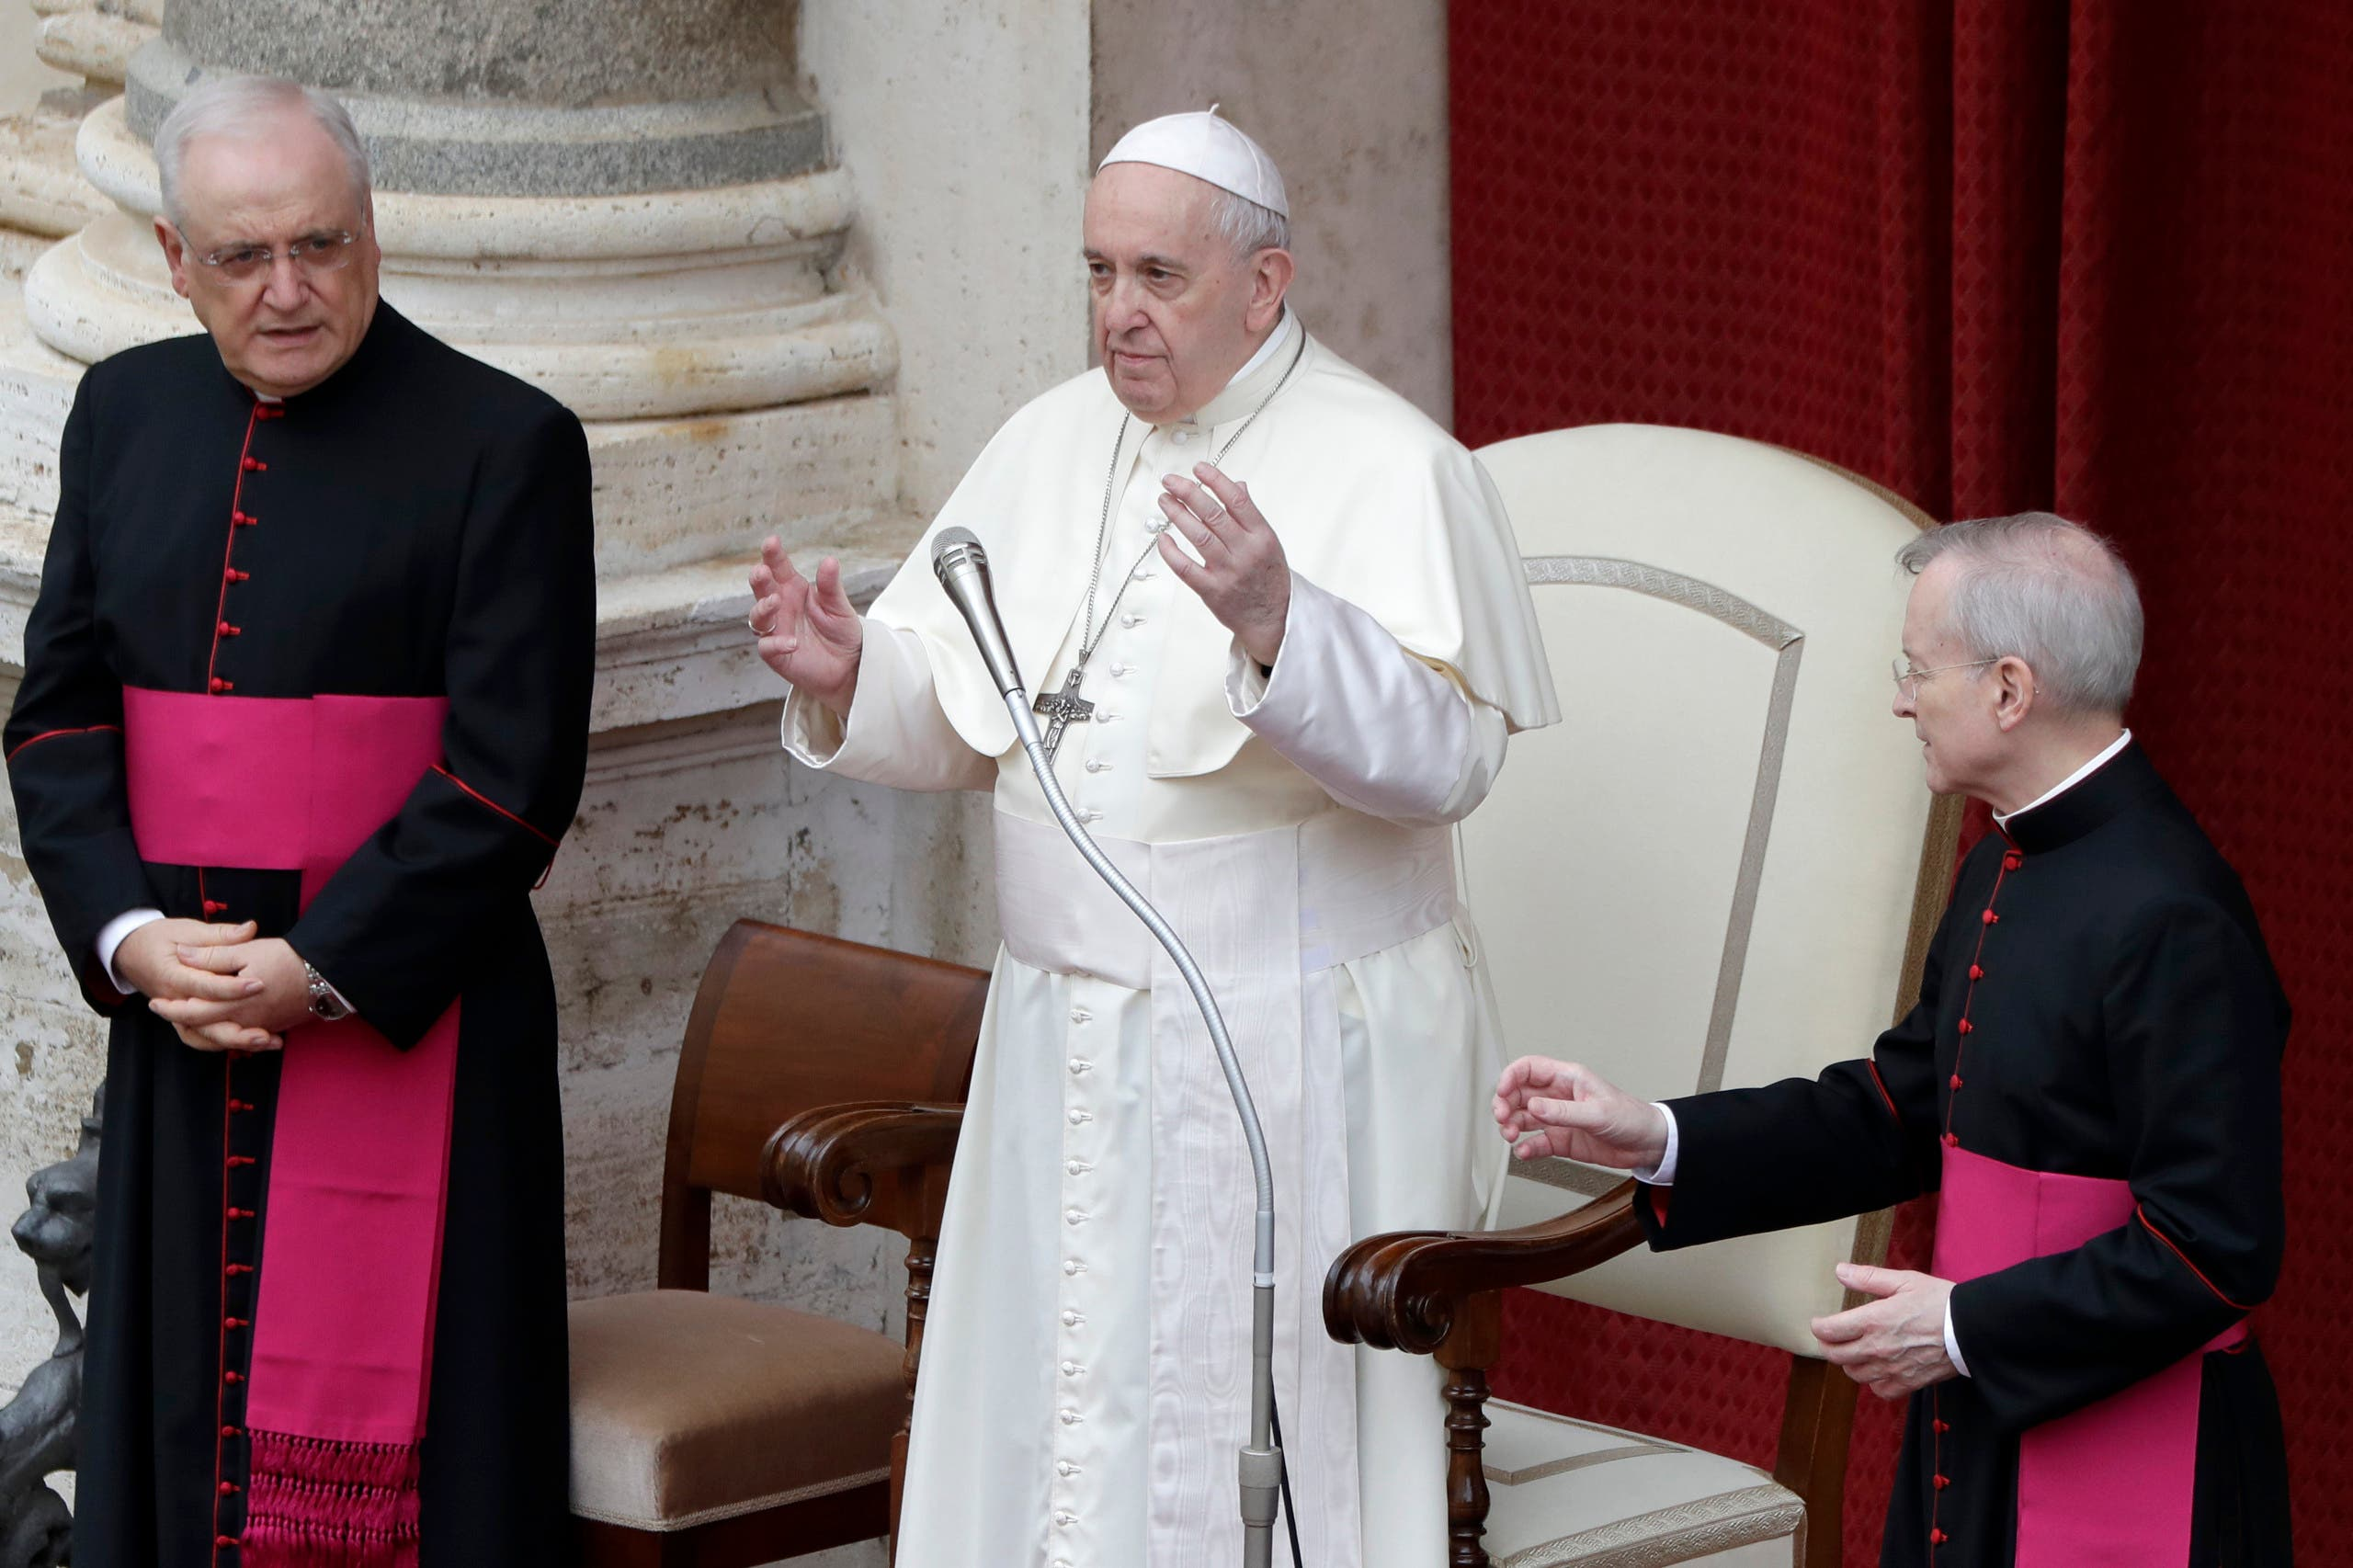 Pope Francis, center, delivers his message during his general audience, the first with faithful since February when the coronavirus outbreak broke out, at the San Damaso courtyard, at the Vatican, Wednesday, Sept. 2, 2020. (AP)